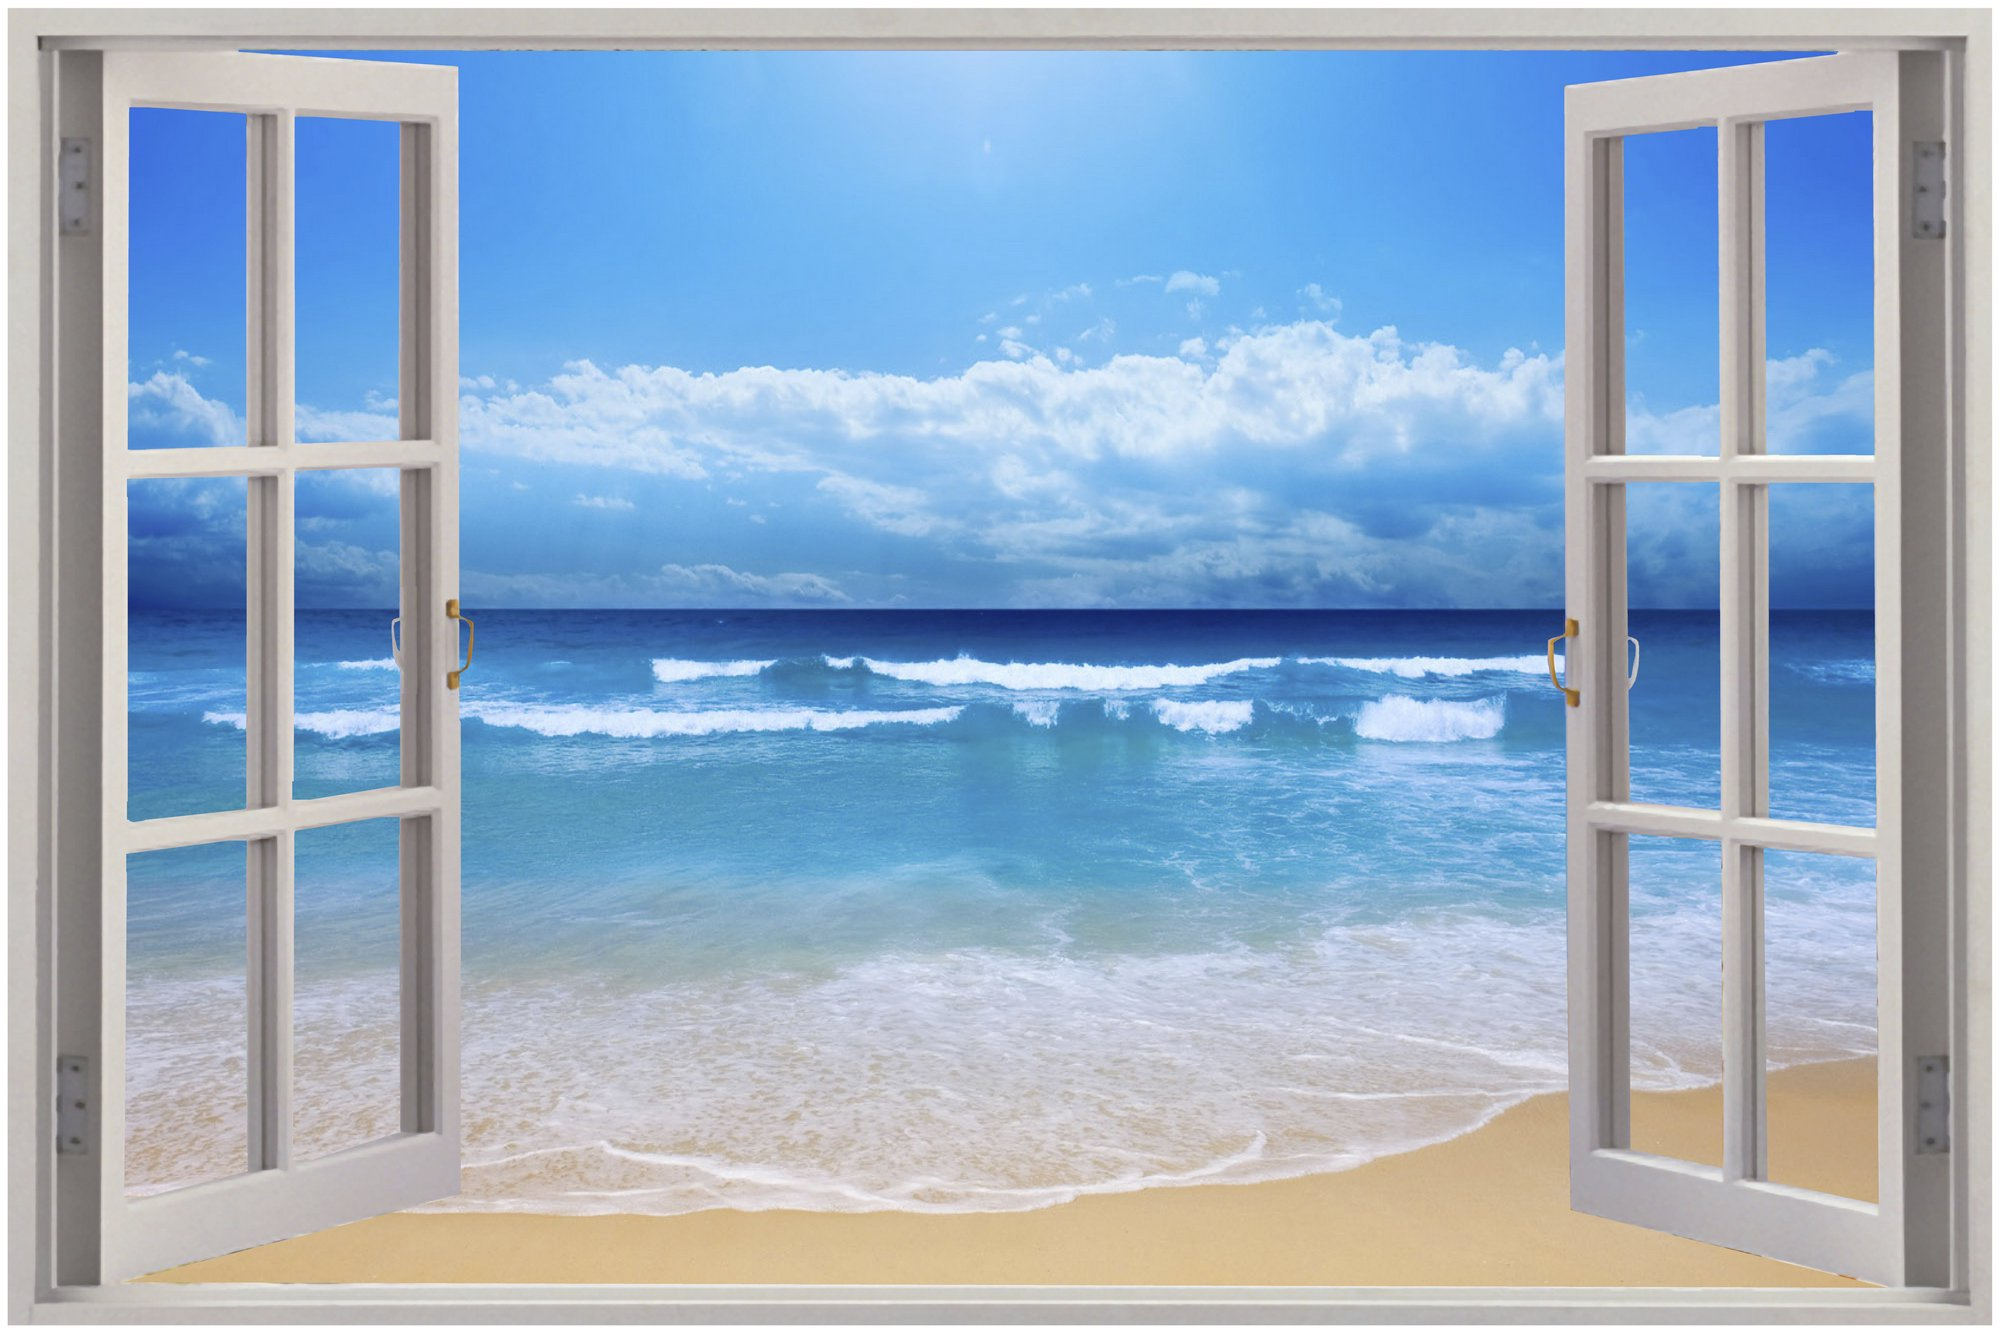 Decorative And Privacy Window Film - Wallpaper For Windows